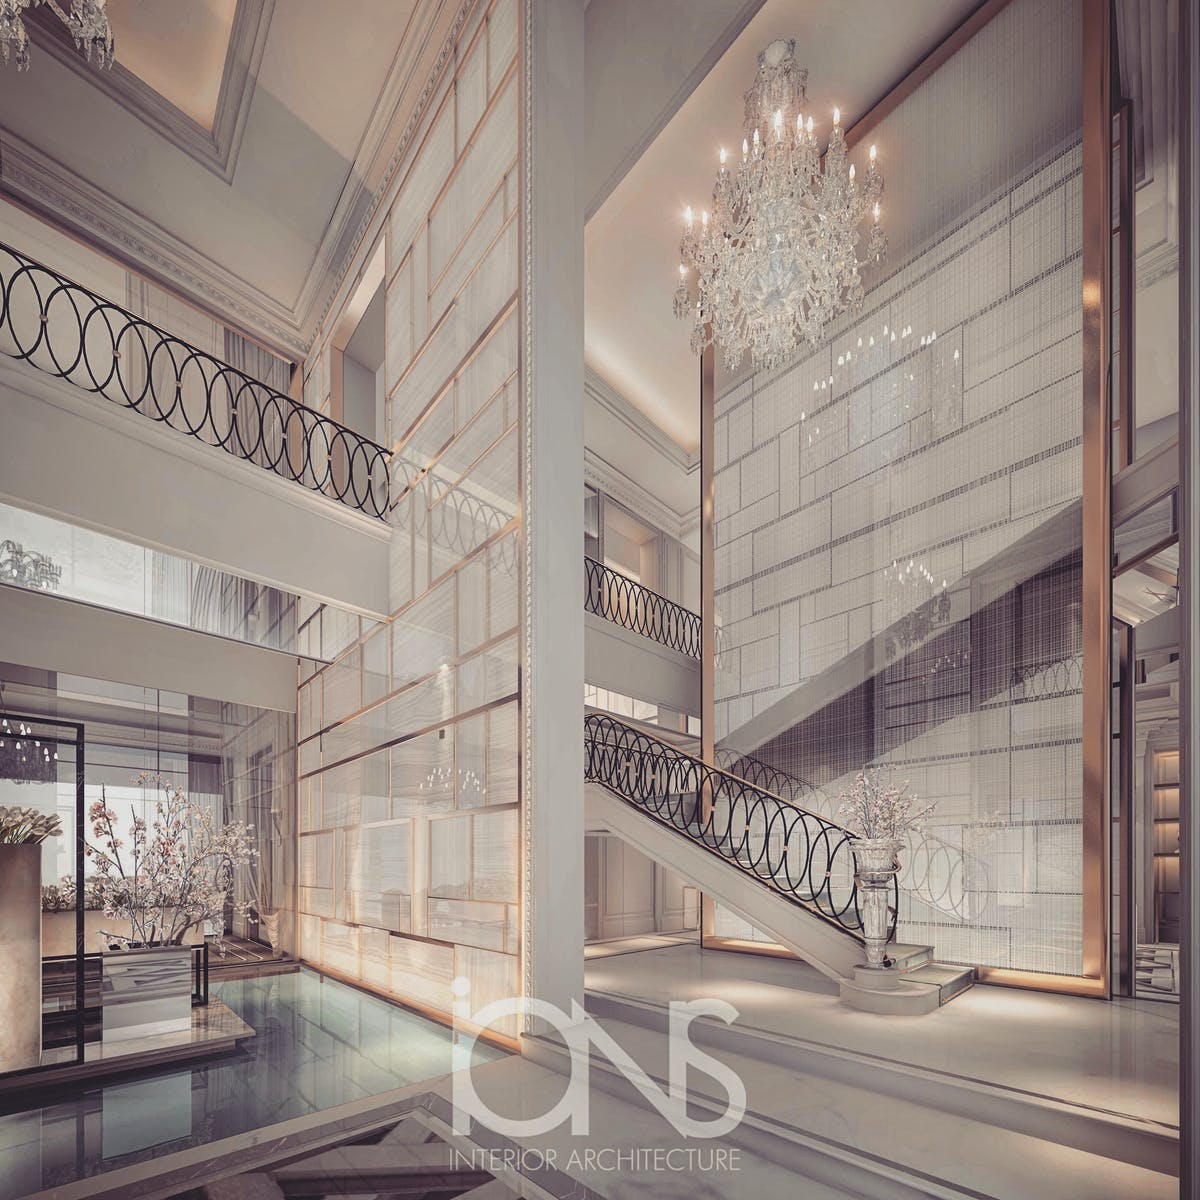 Ions Interior Design Dubai villa design – entrance lobby and foyer interior design